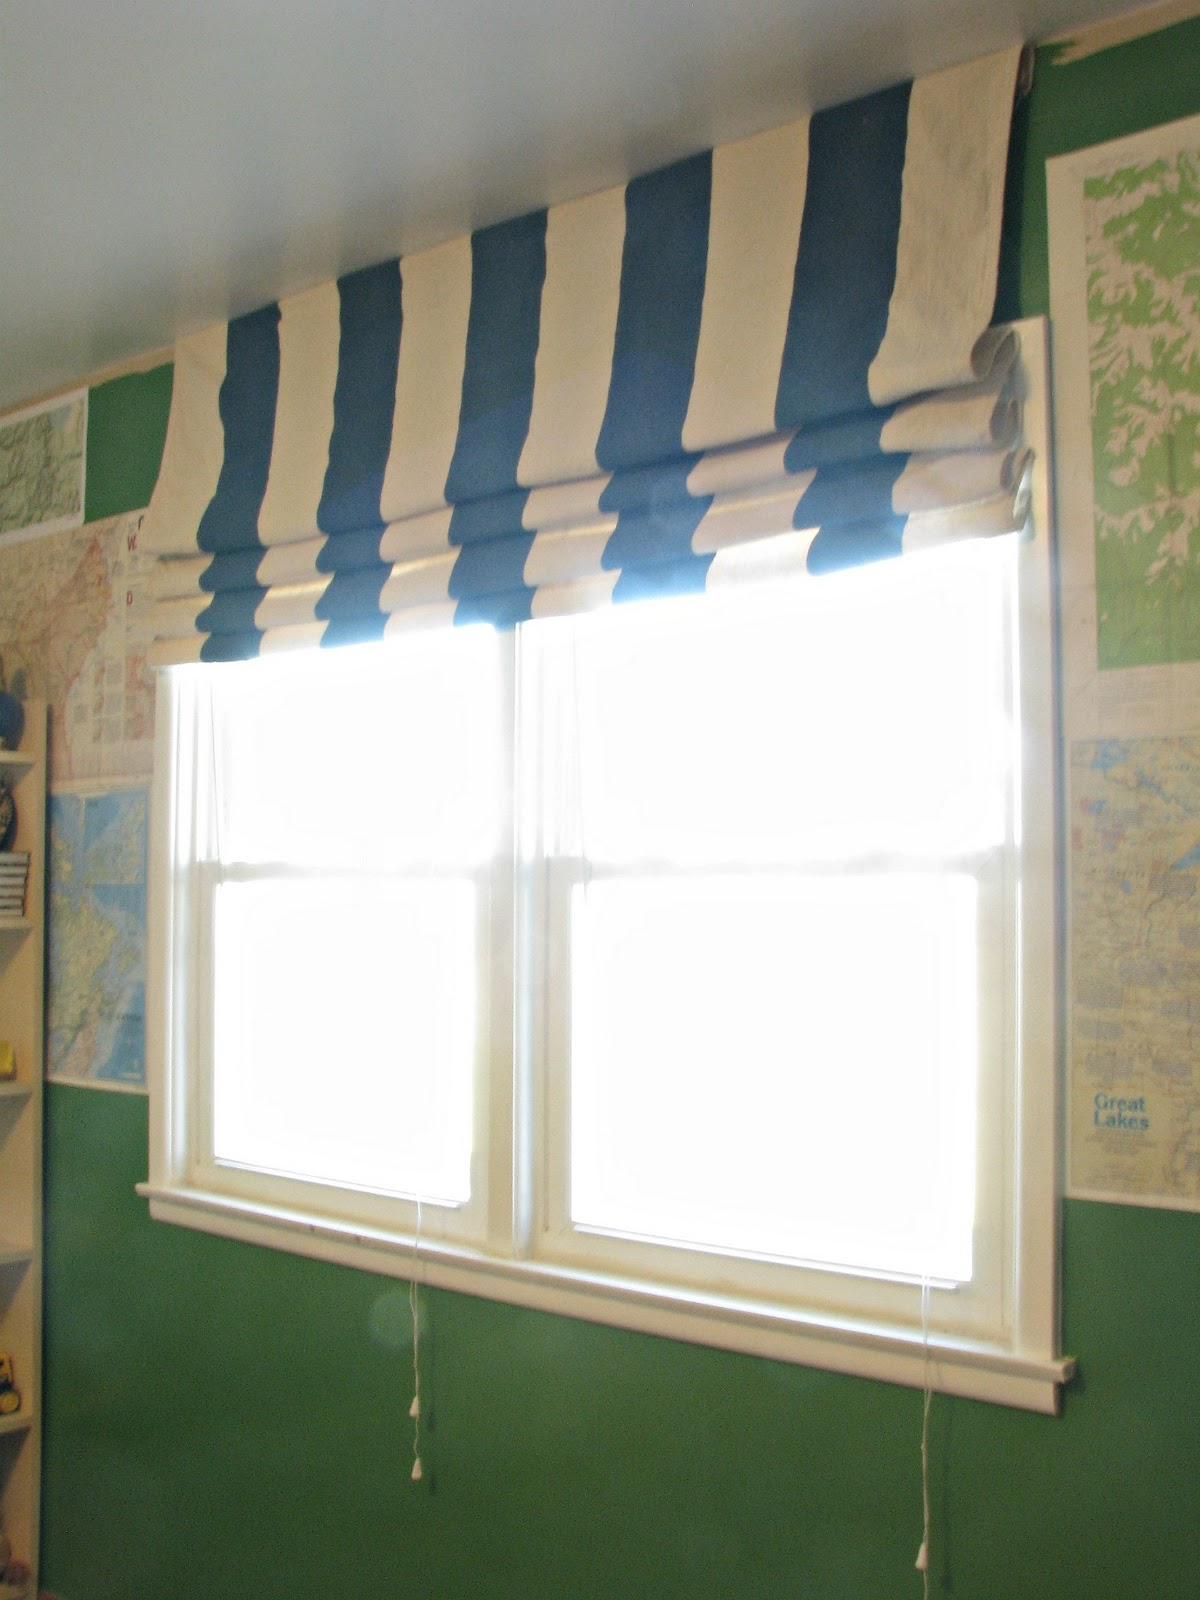 Drop Cloth Curtains Tutorial Beauty 4 Ashes Striped Drop Cloth Curtains